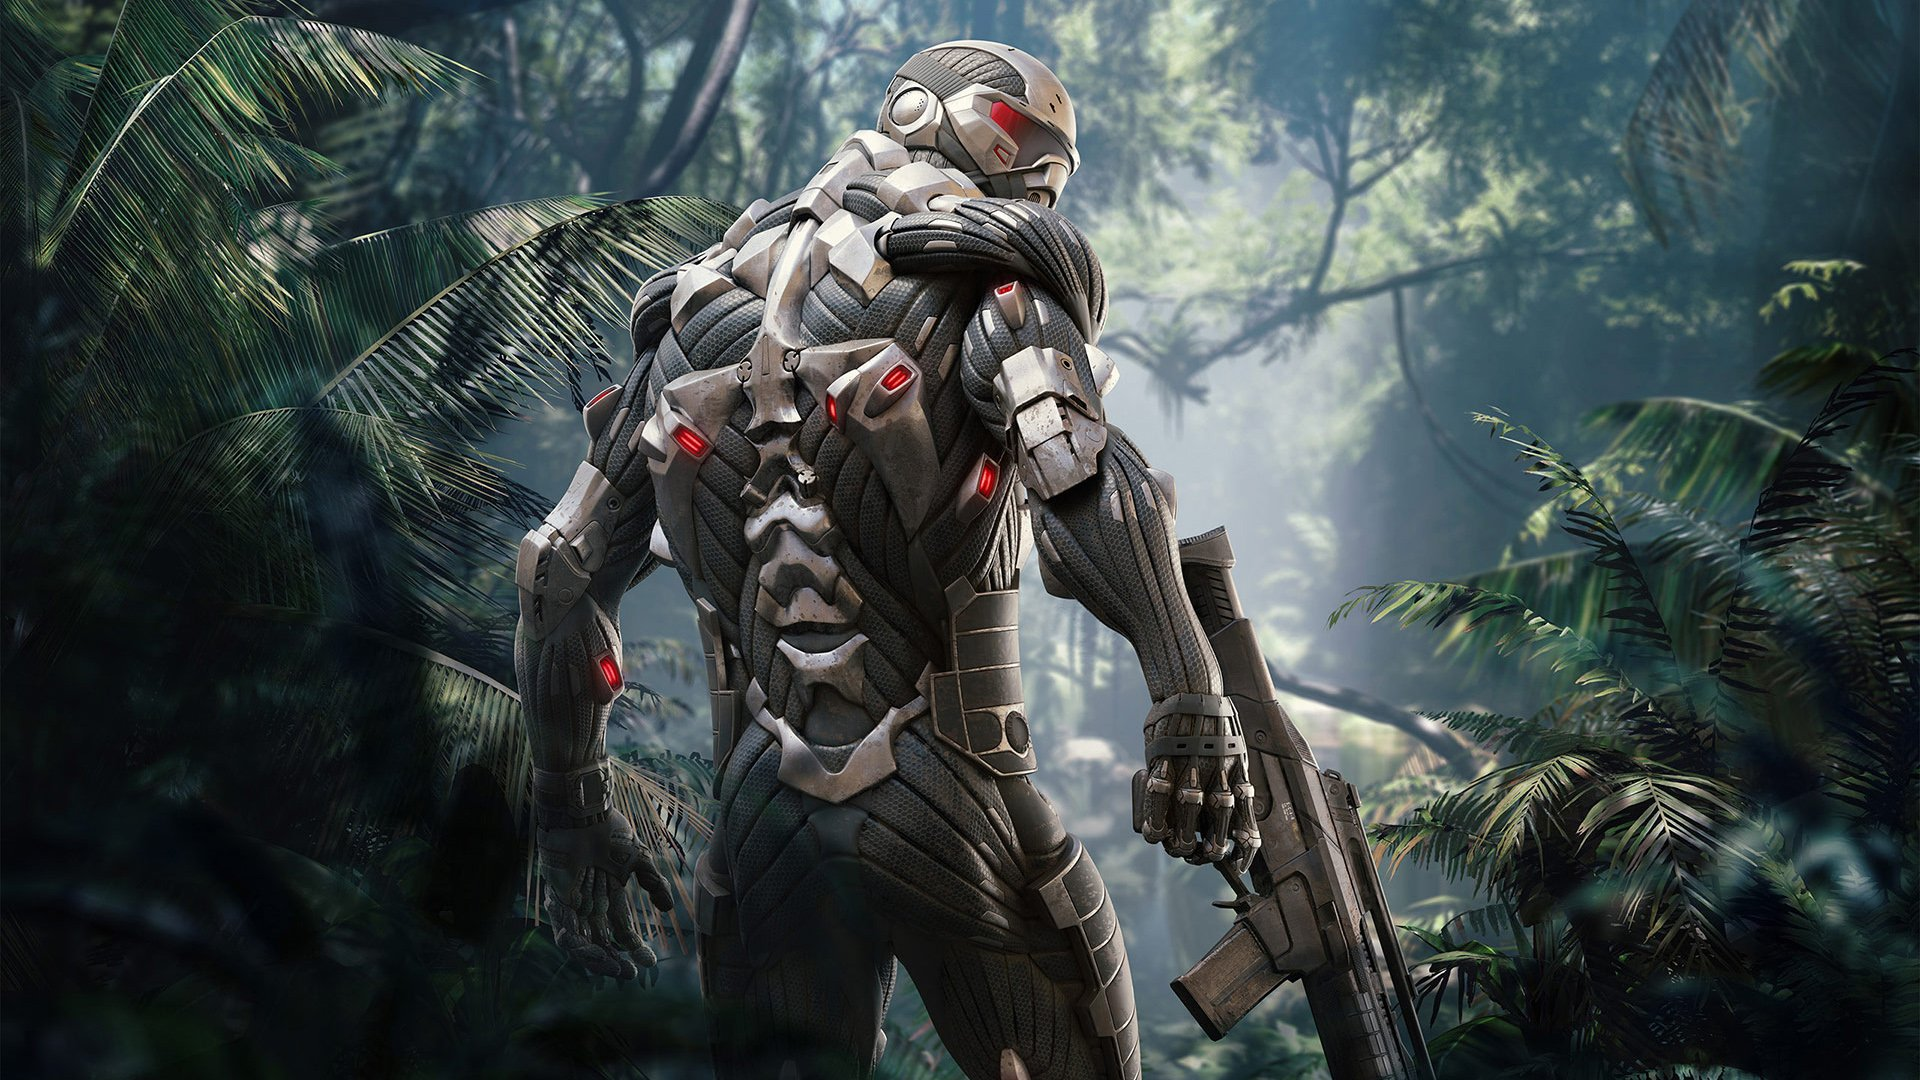 Our first look at Crysis Remastered comes Wednesday morning screenshot